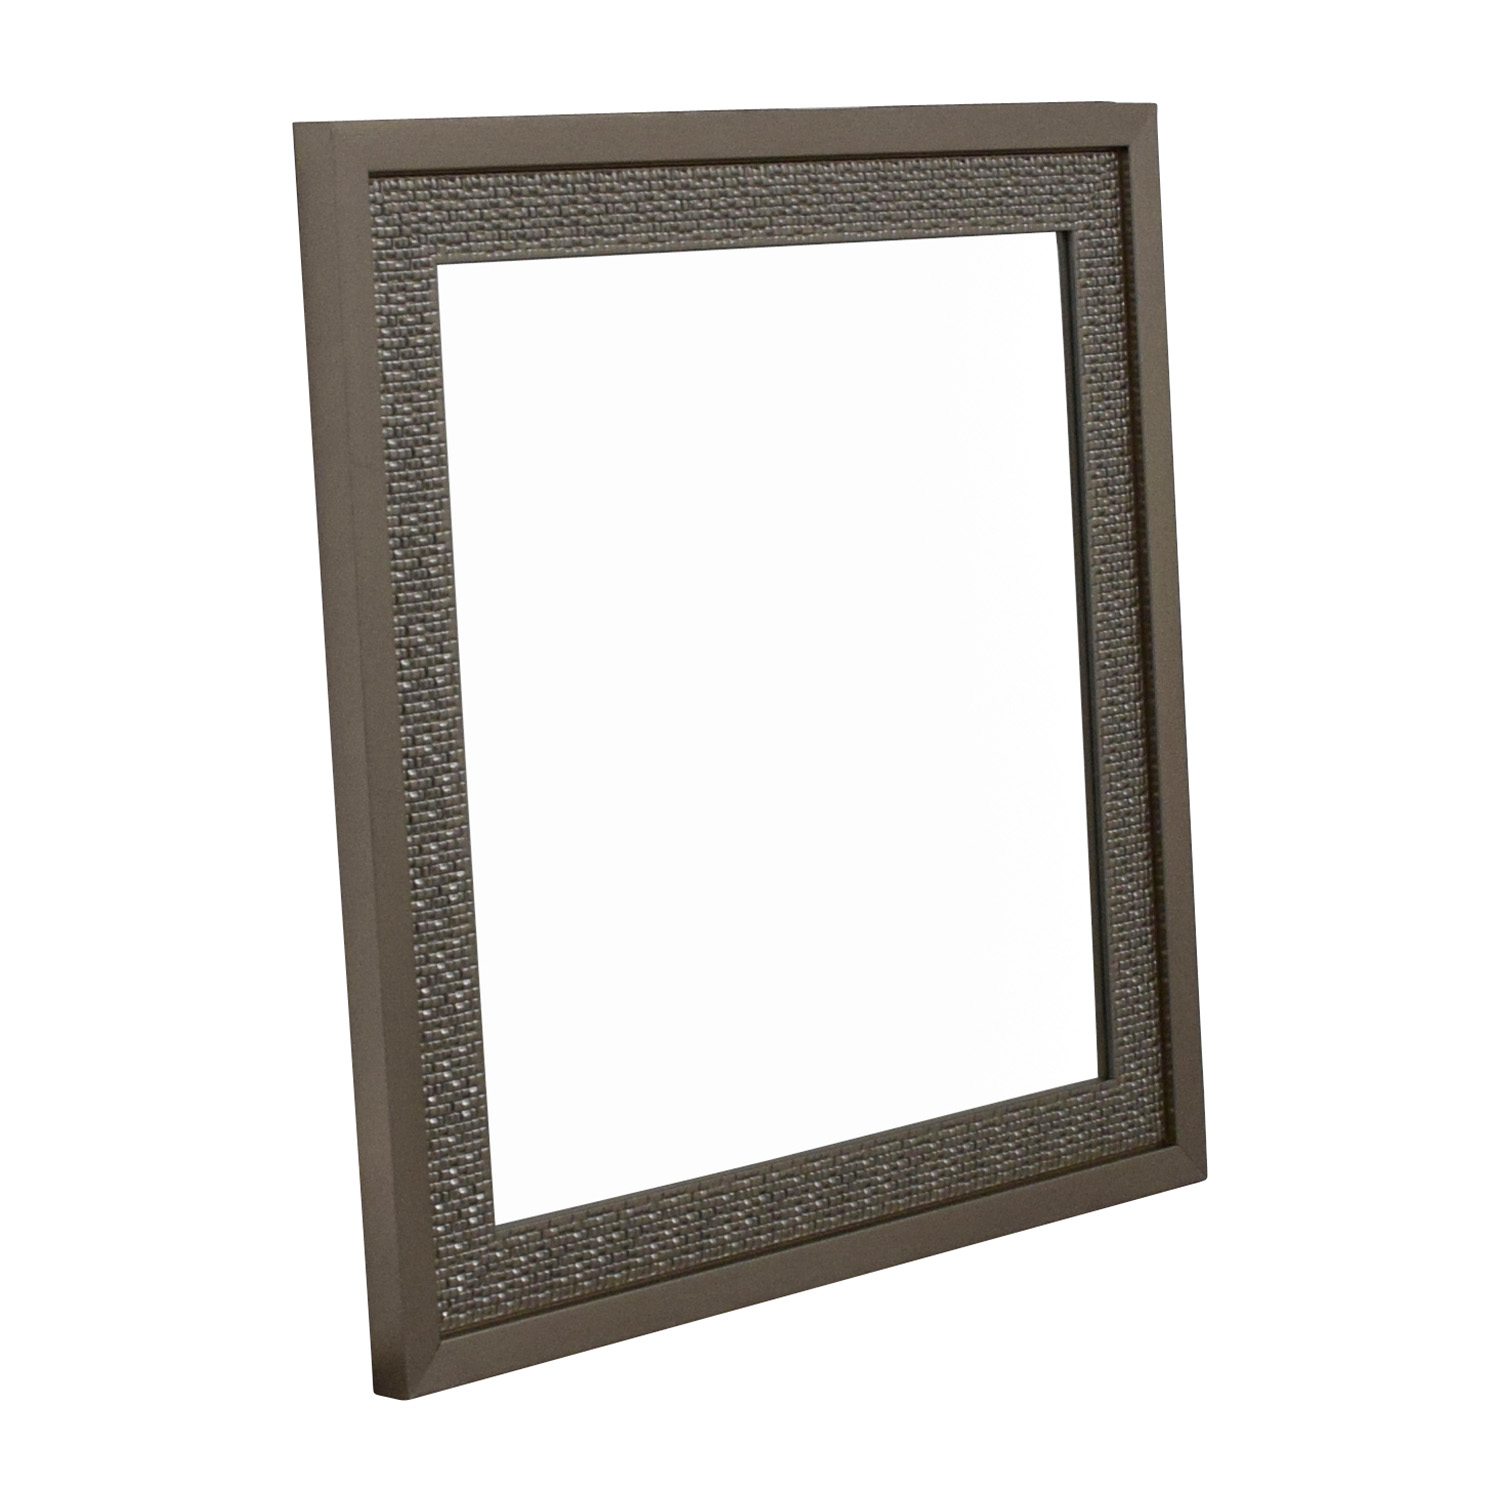 Target Target Decorative Silver Mirror on sale